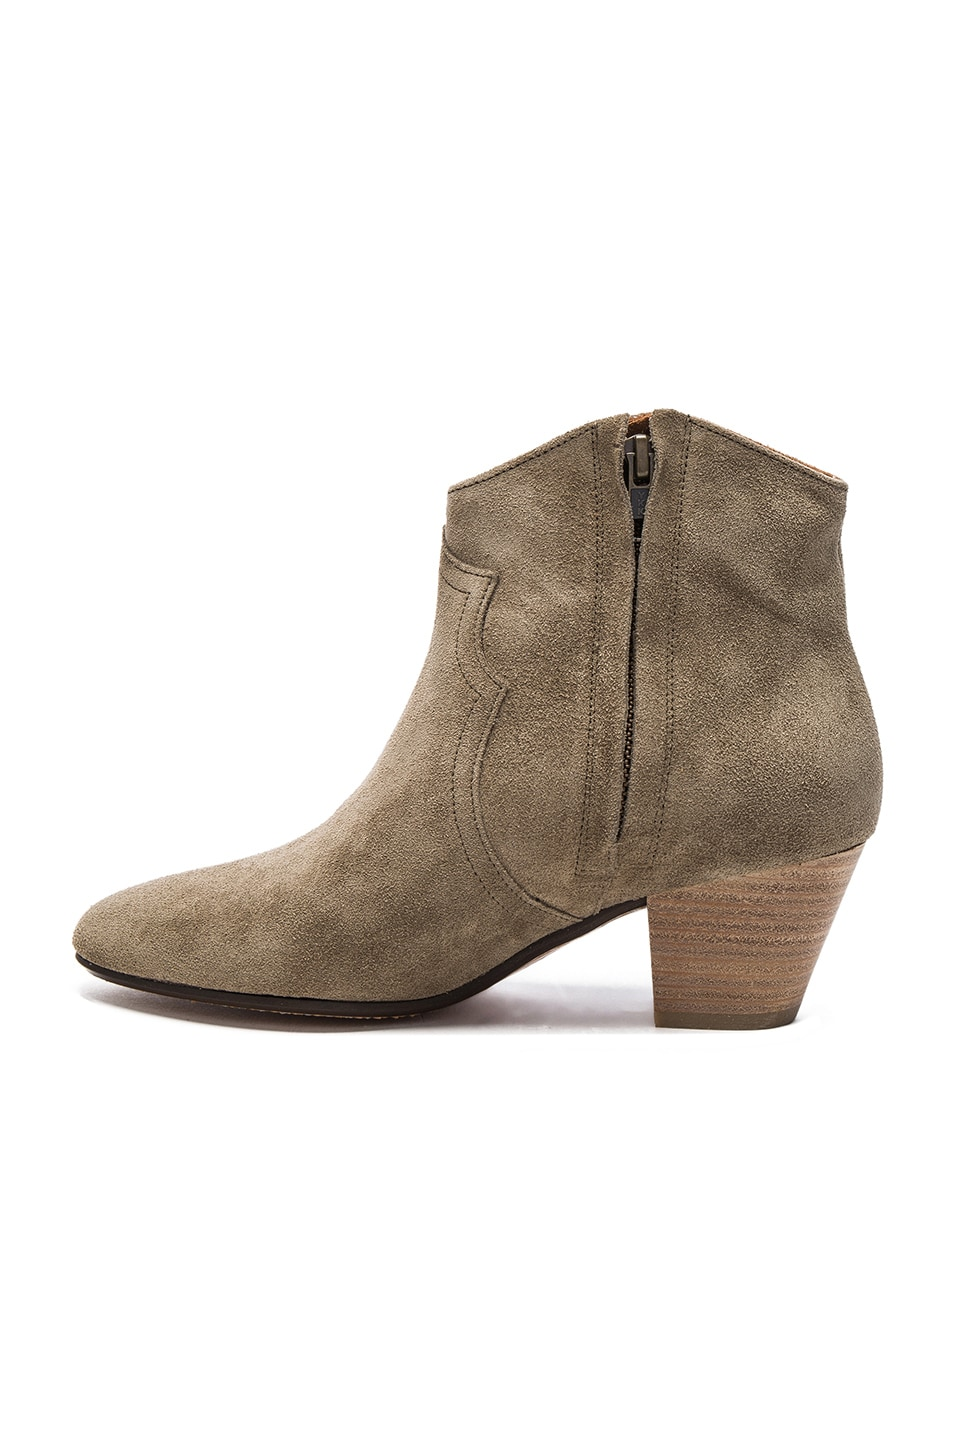 Image 5 of Isabel Marant Etoile Dicker Velvet Booties in Taupe